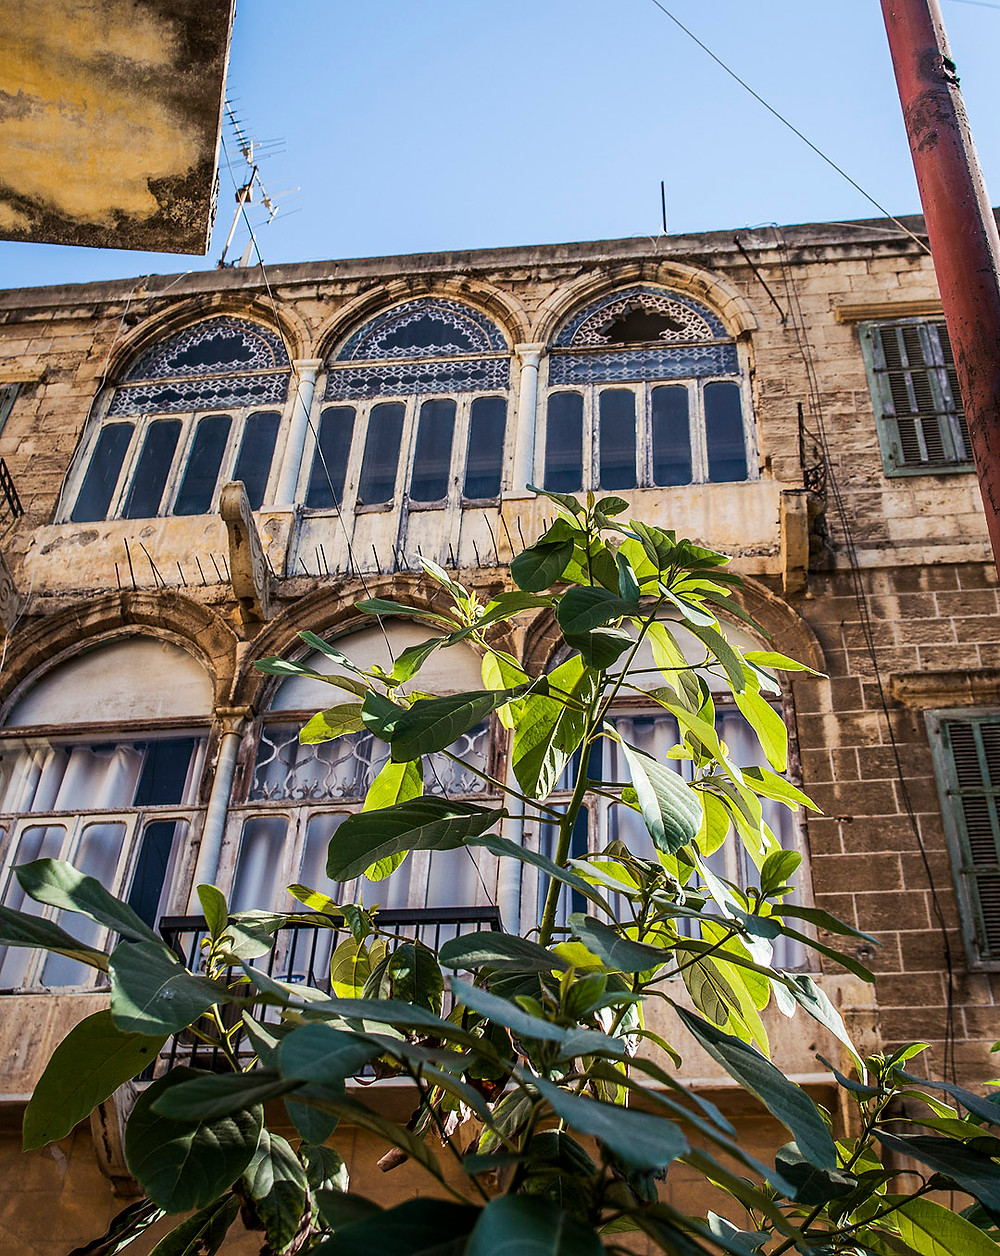 Building in Ras Beirut, Lebanon